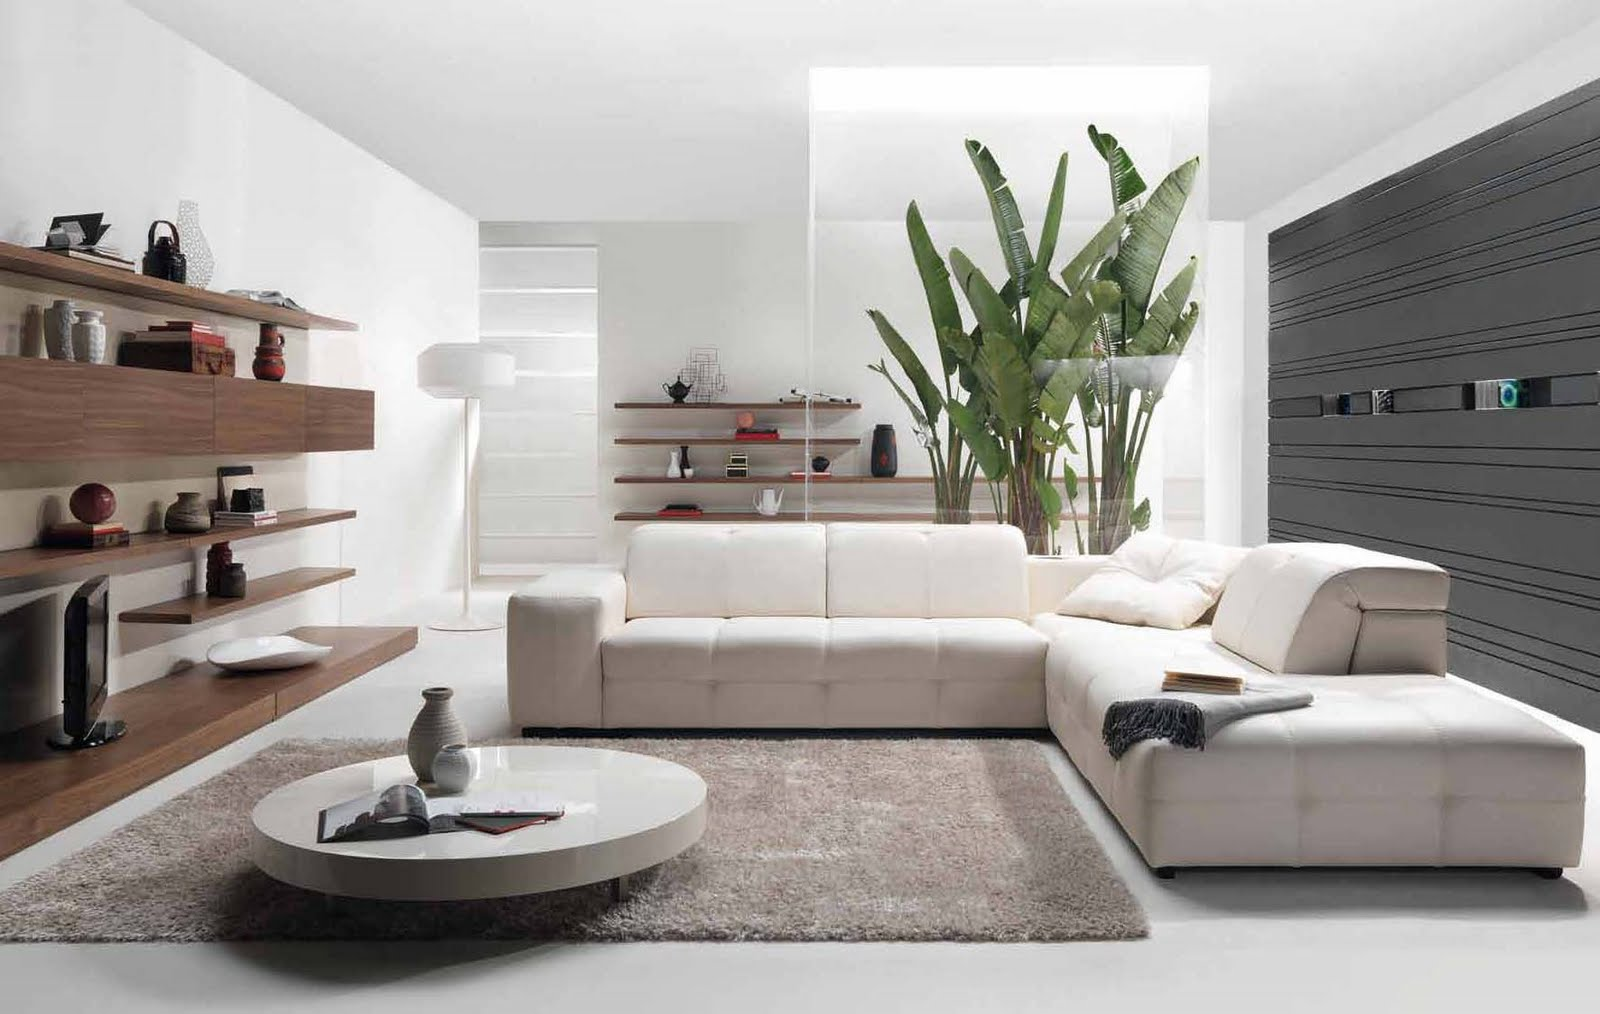 Future house design modern living room interior design styles 2010 by natuzzi - Contemporary house interior ...